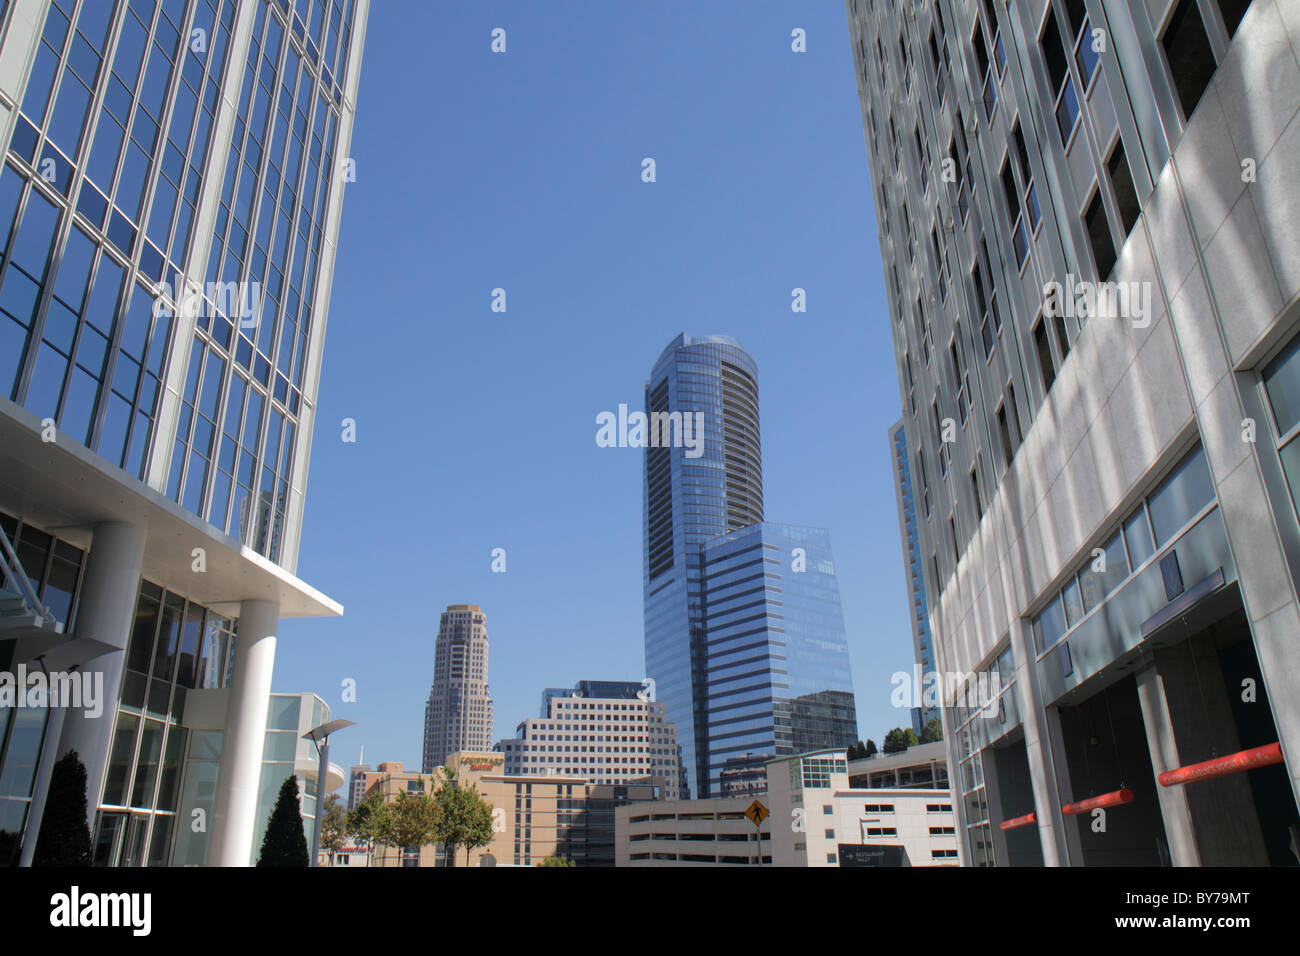 Atlanta Georgia Buckhead Peachtree Street skyscraper high rise office building upscale commercial real estate modern - Stock Image